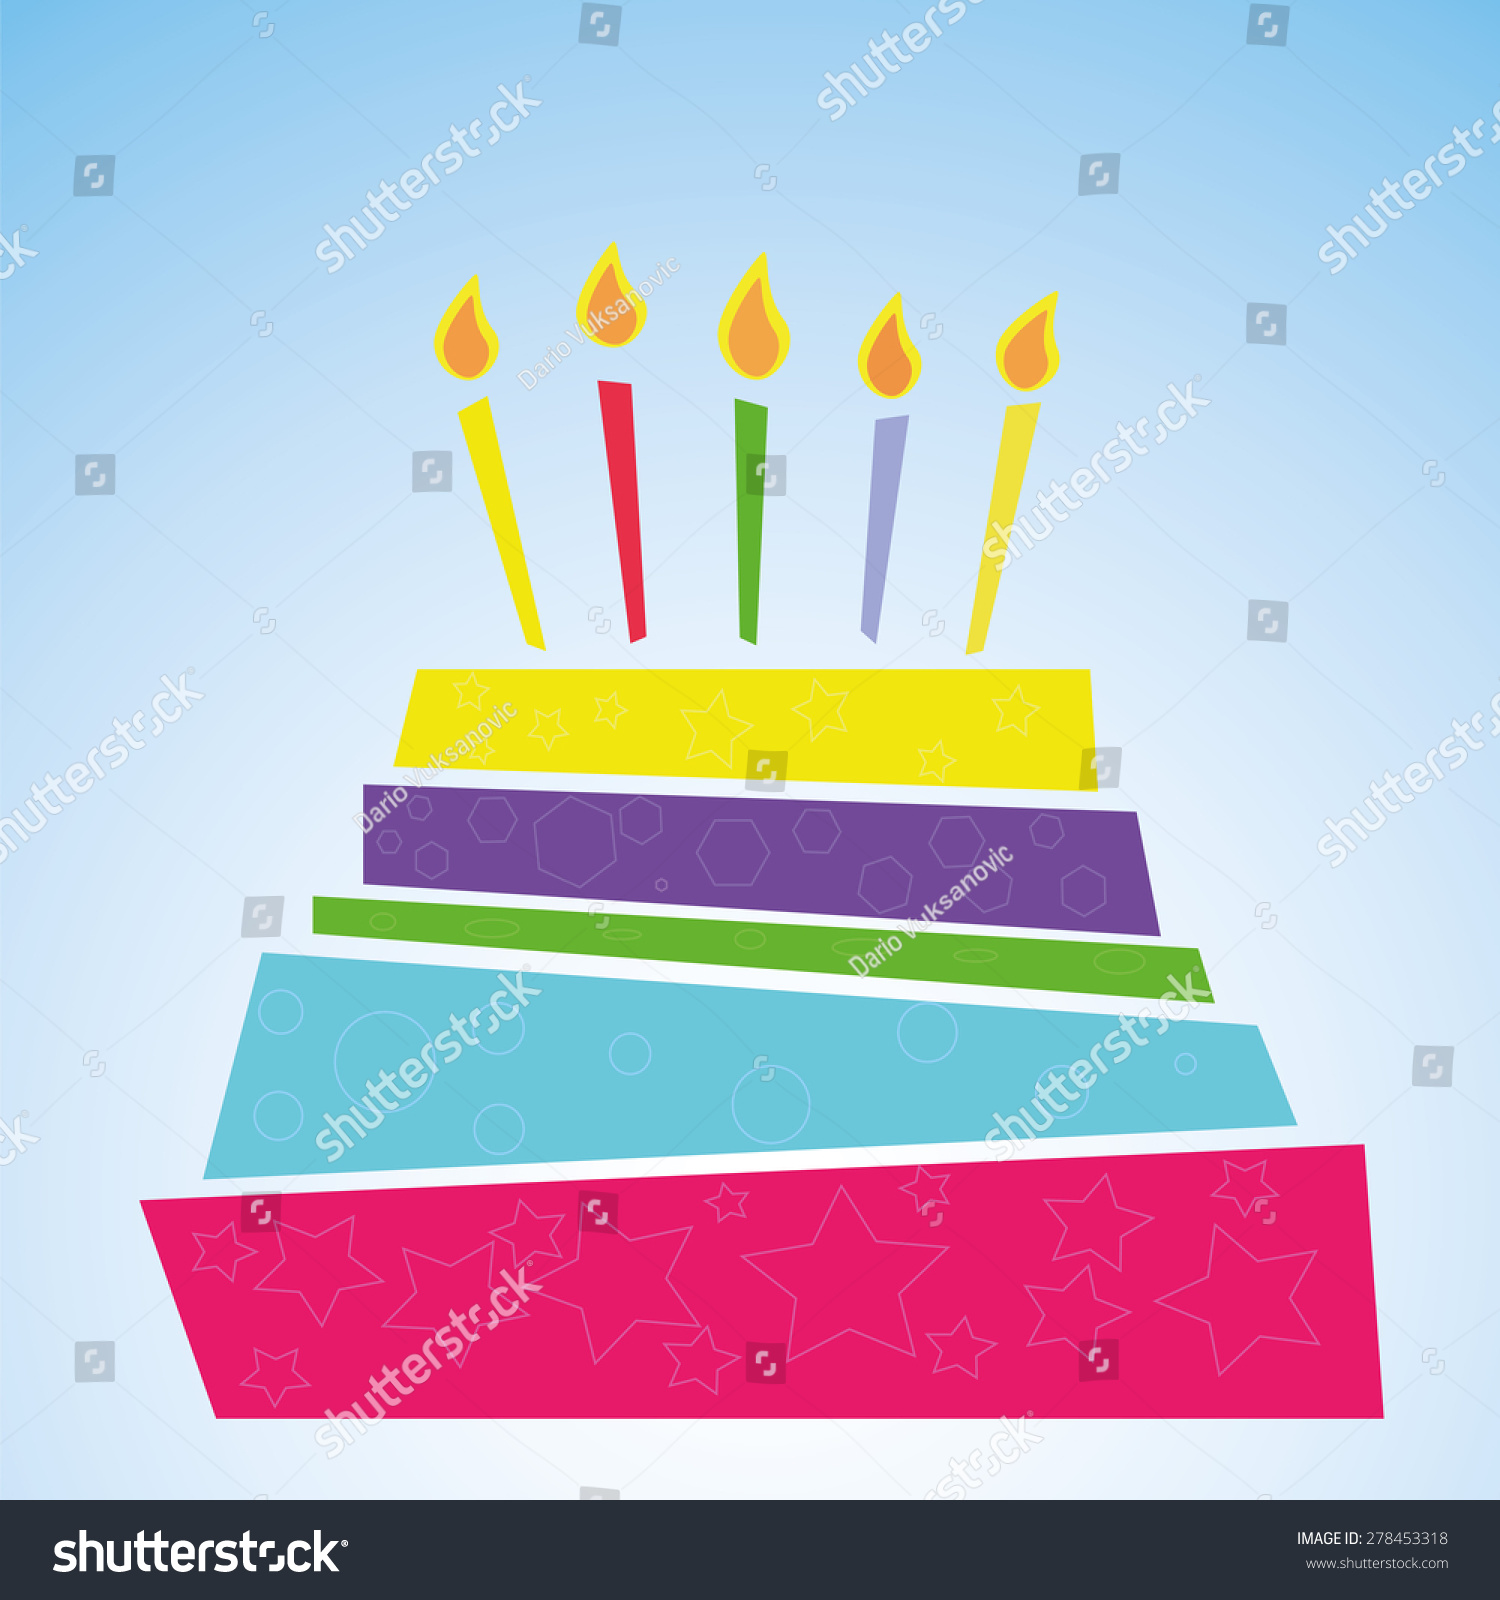 Birthday Cake Vector Eps 10 Illustration Stock Vector 278453318